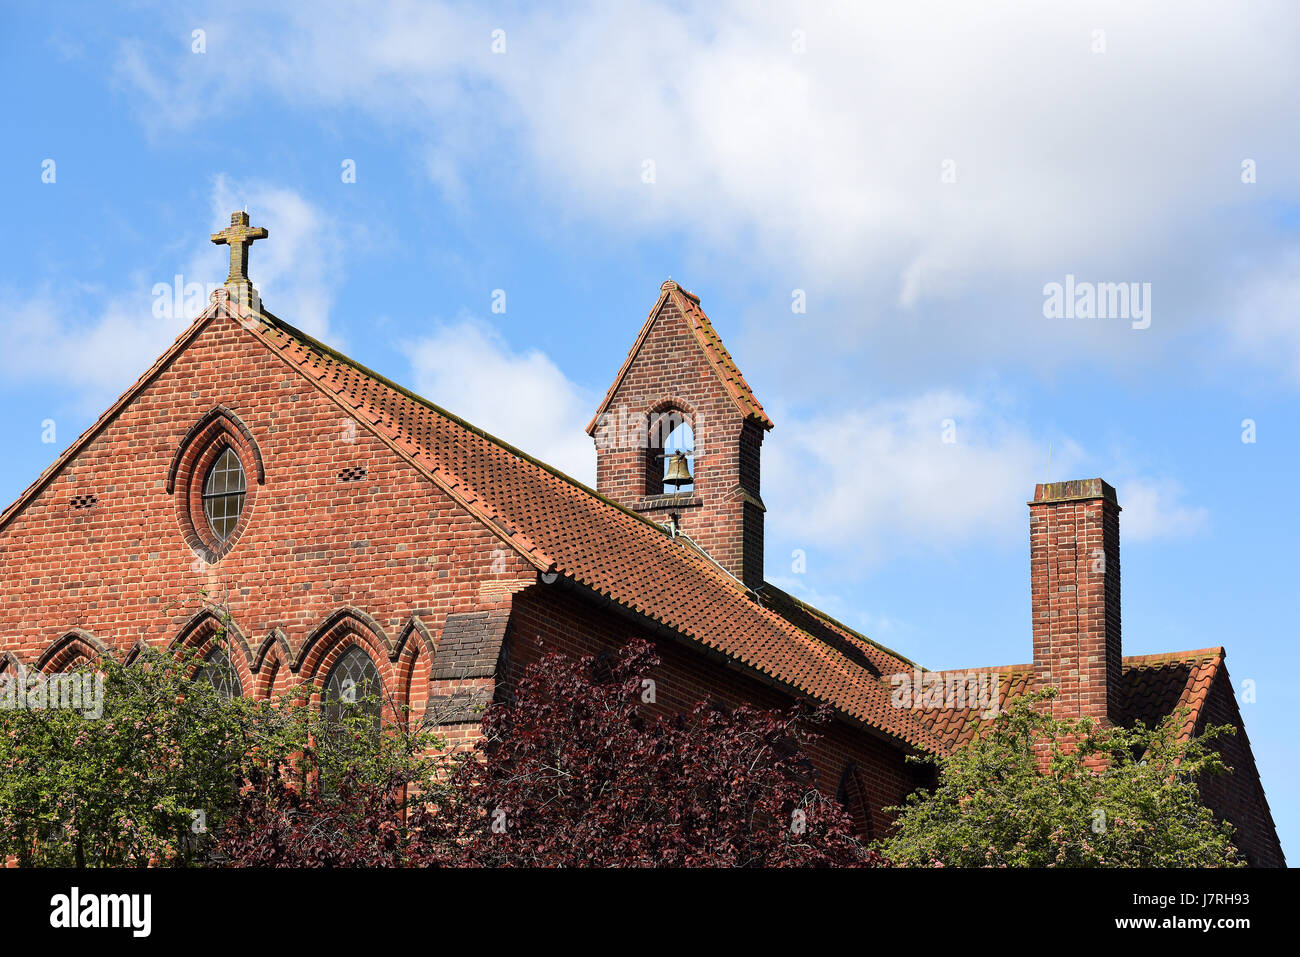 St. Andrews Church Westcliff on Sea, Essex,Church of England Diocese of Chelmsford - Stock Image